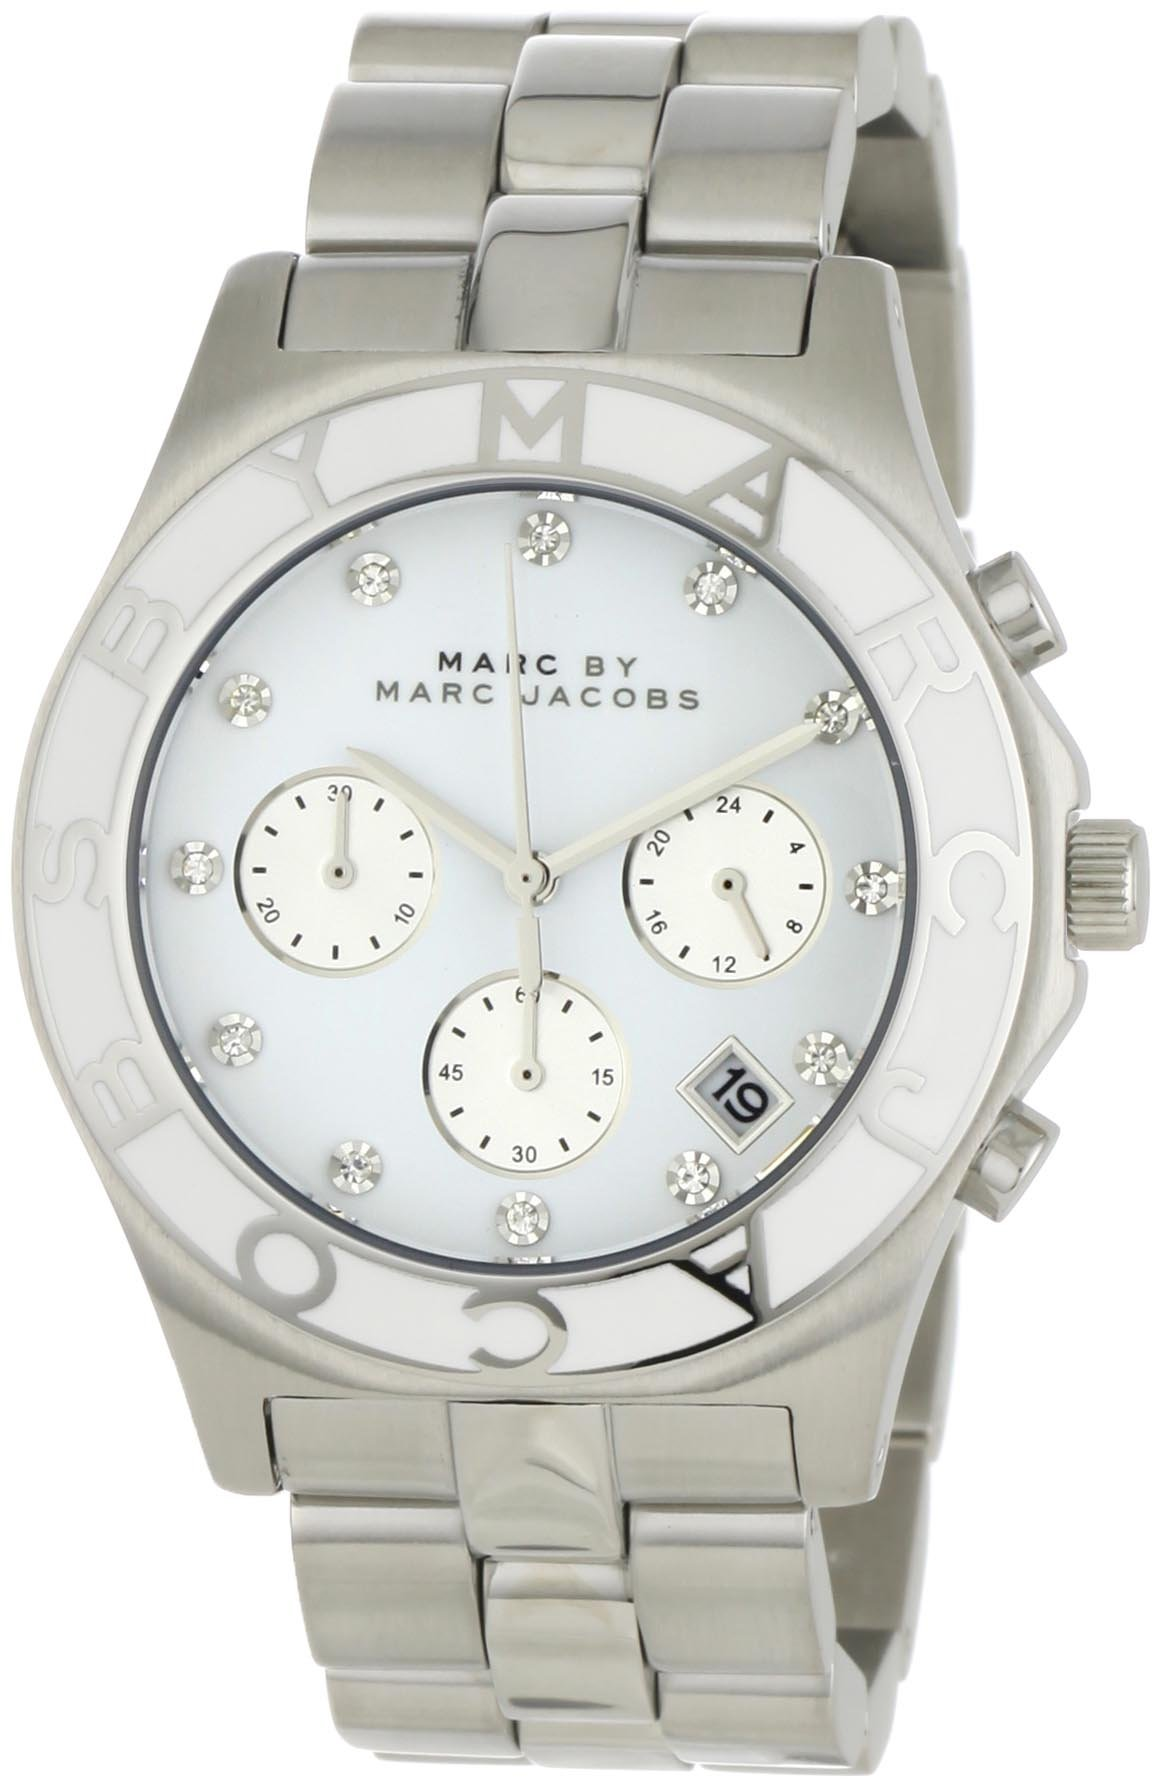 Marc by Marc Jacobs Women's MBM3080 Blade Classic Stainless Steel Chronograph Watch by Marc by Marc Jacobs